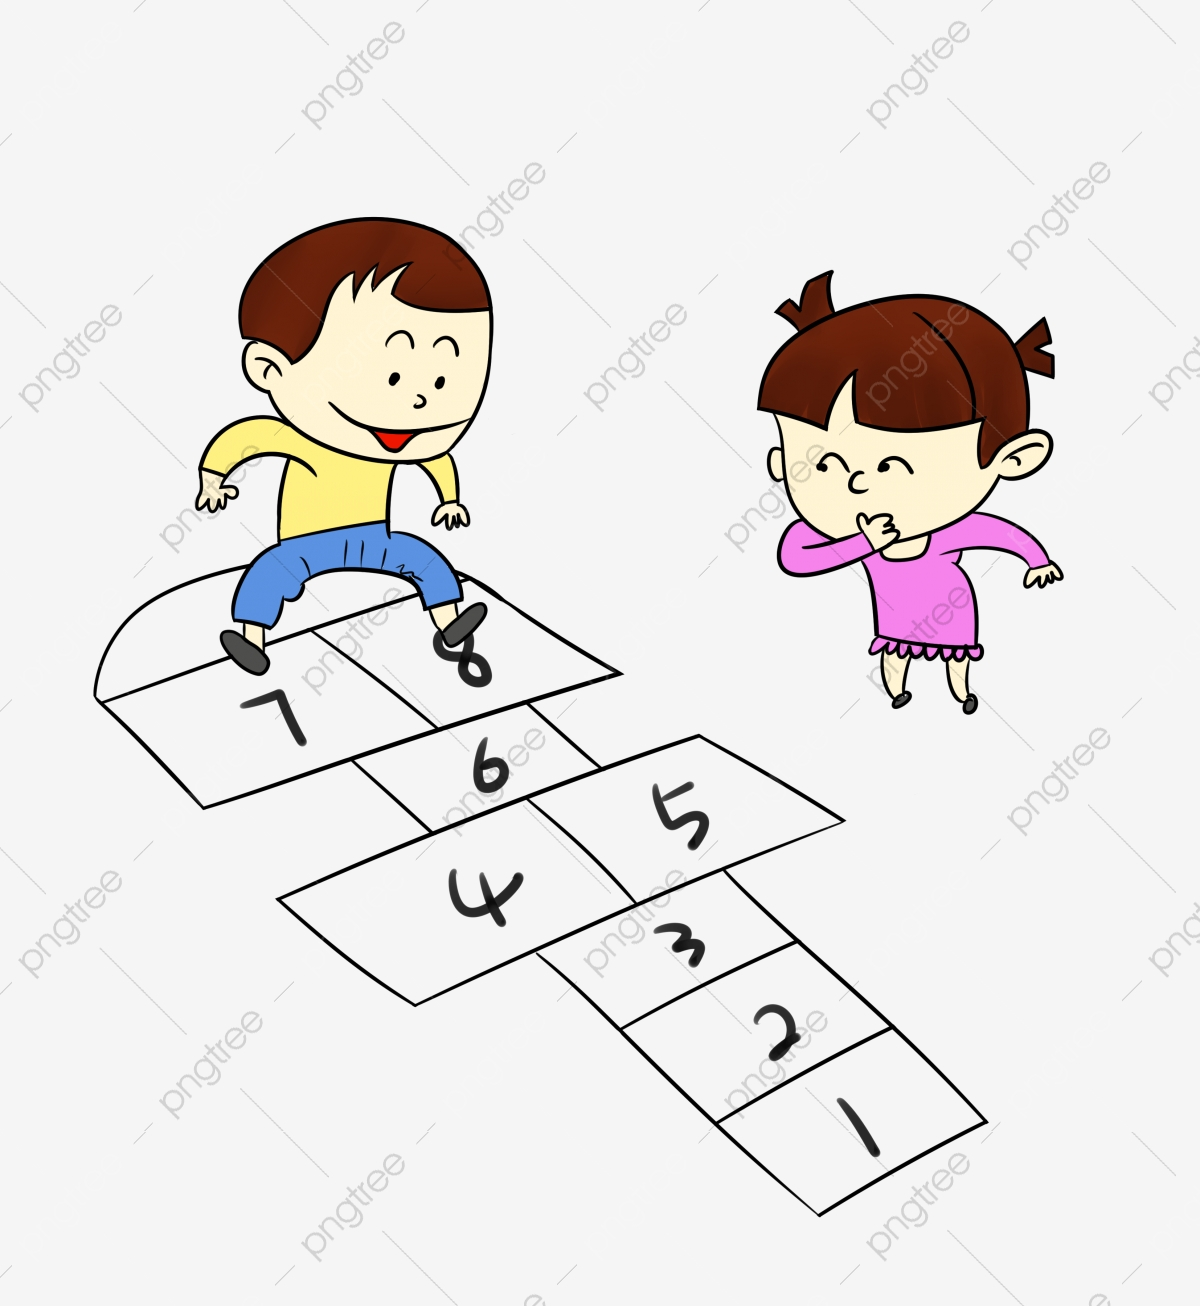 Cartoon Short Green Child Hopscotch Childhood Memories Png Transparent Clipart Image And Psd File For Free Download